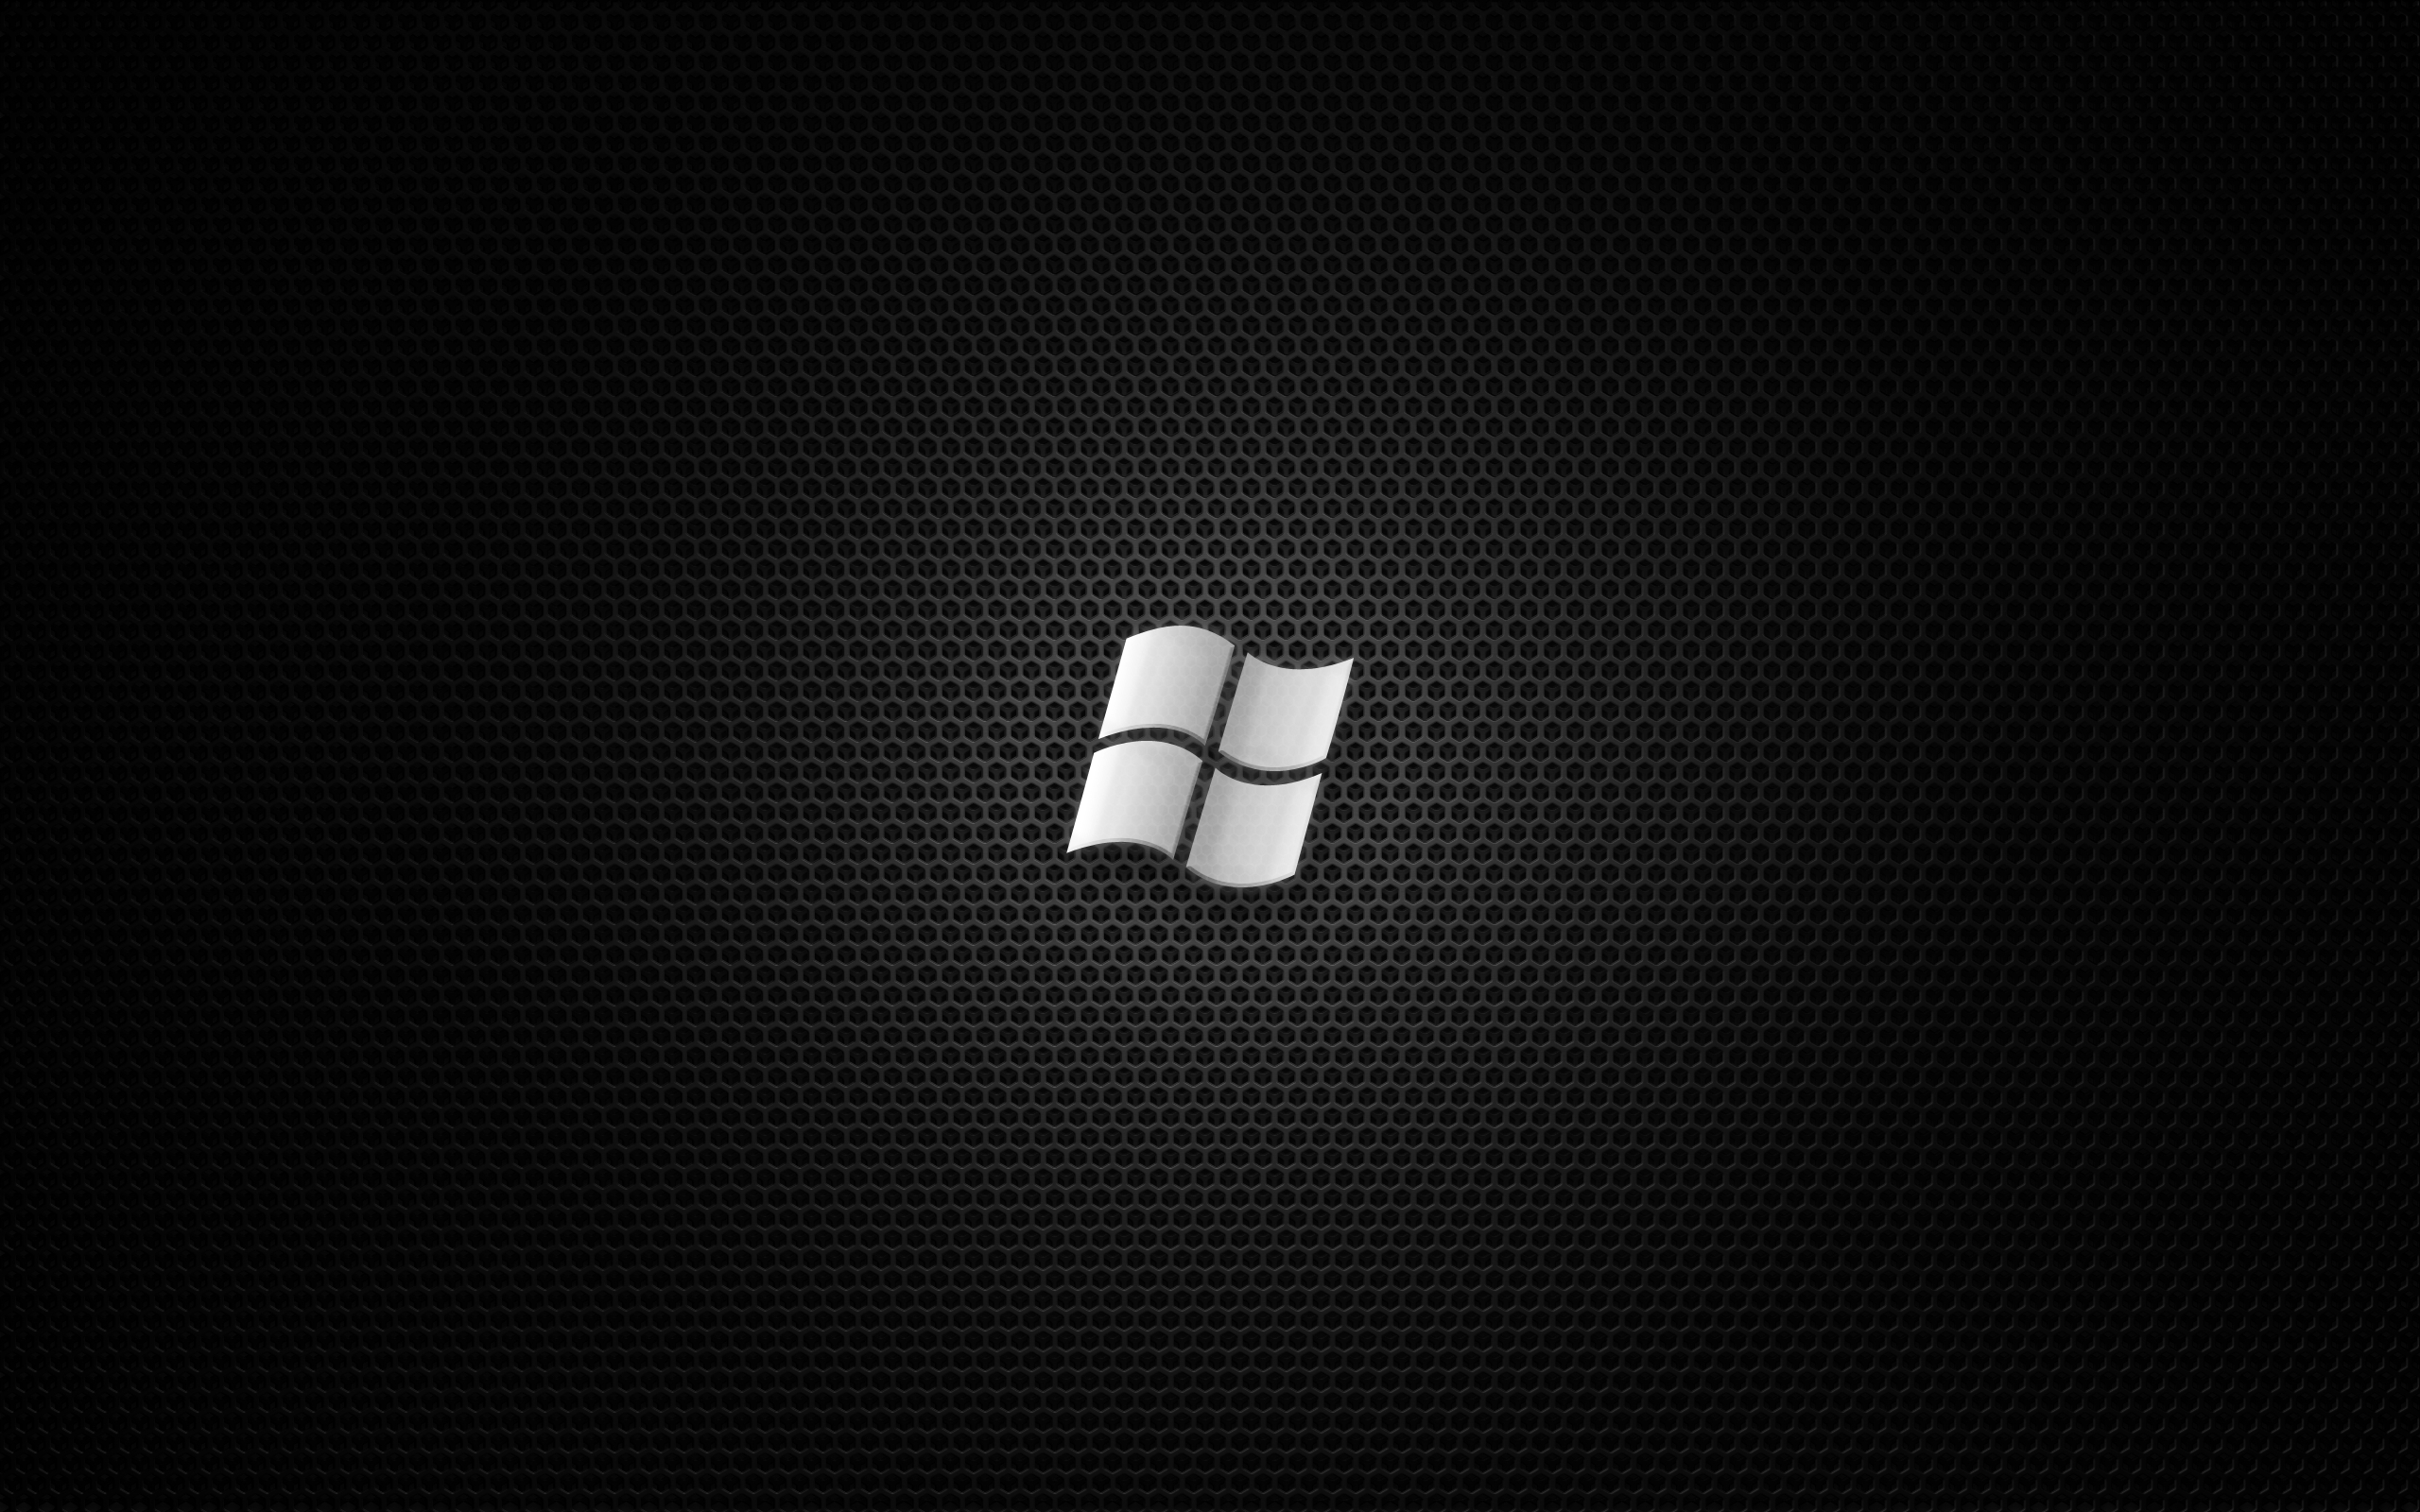 80 windows 7 hd wallpapers | background images - wallpaper abyss